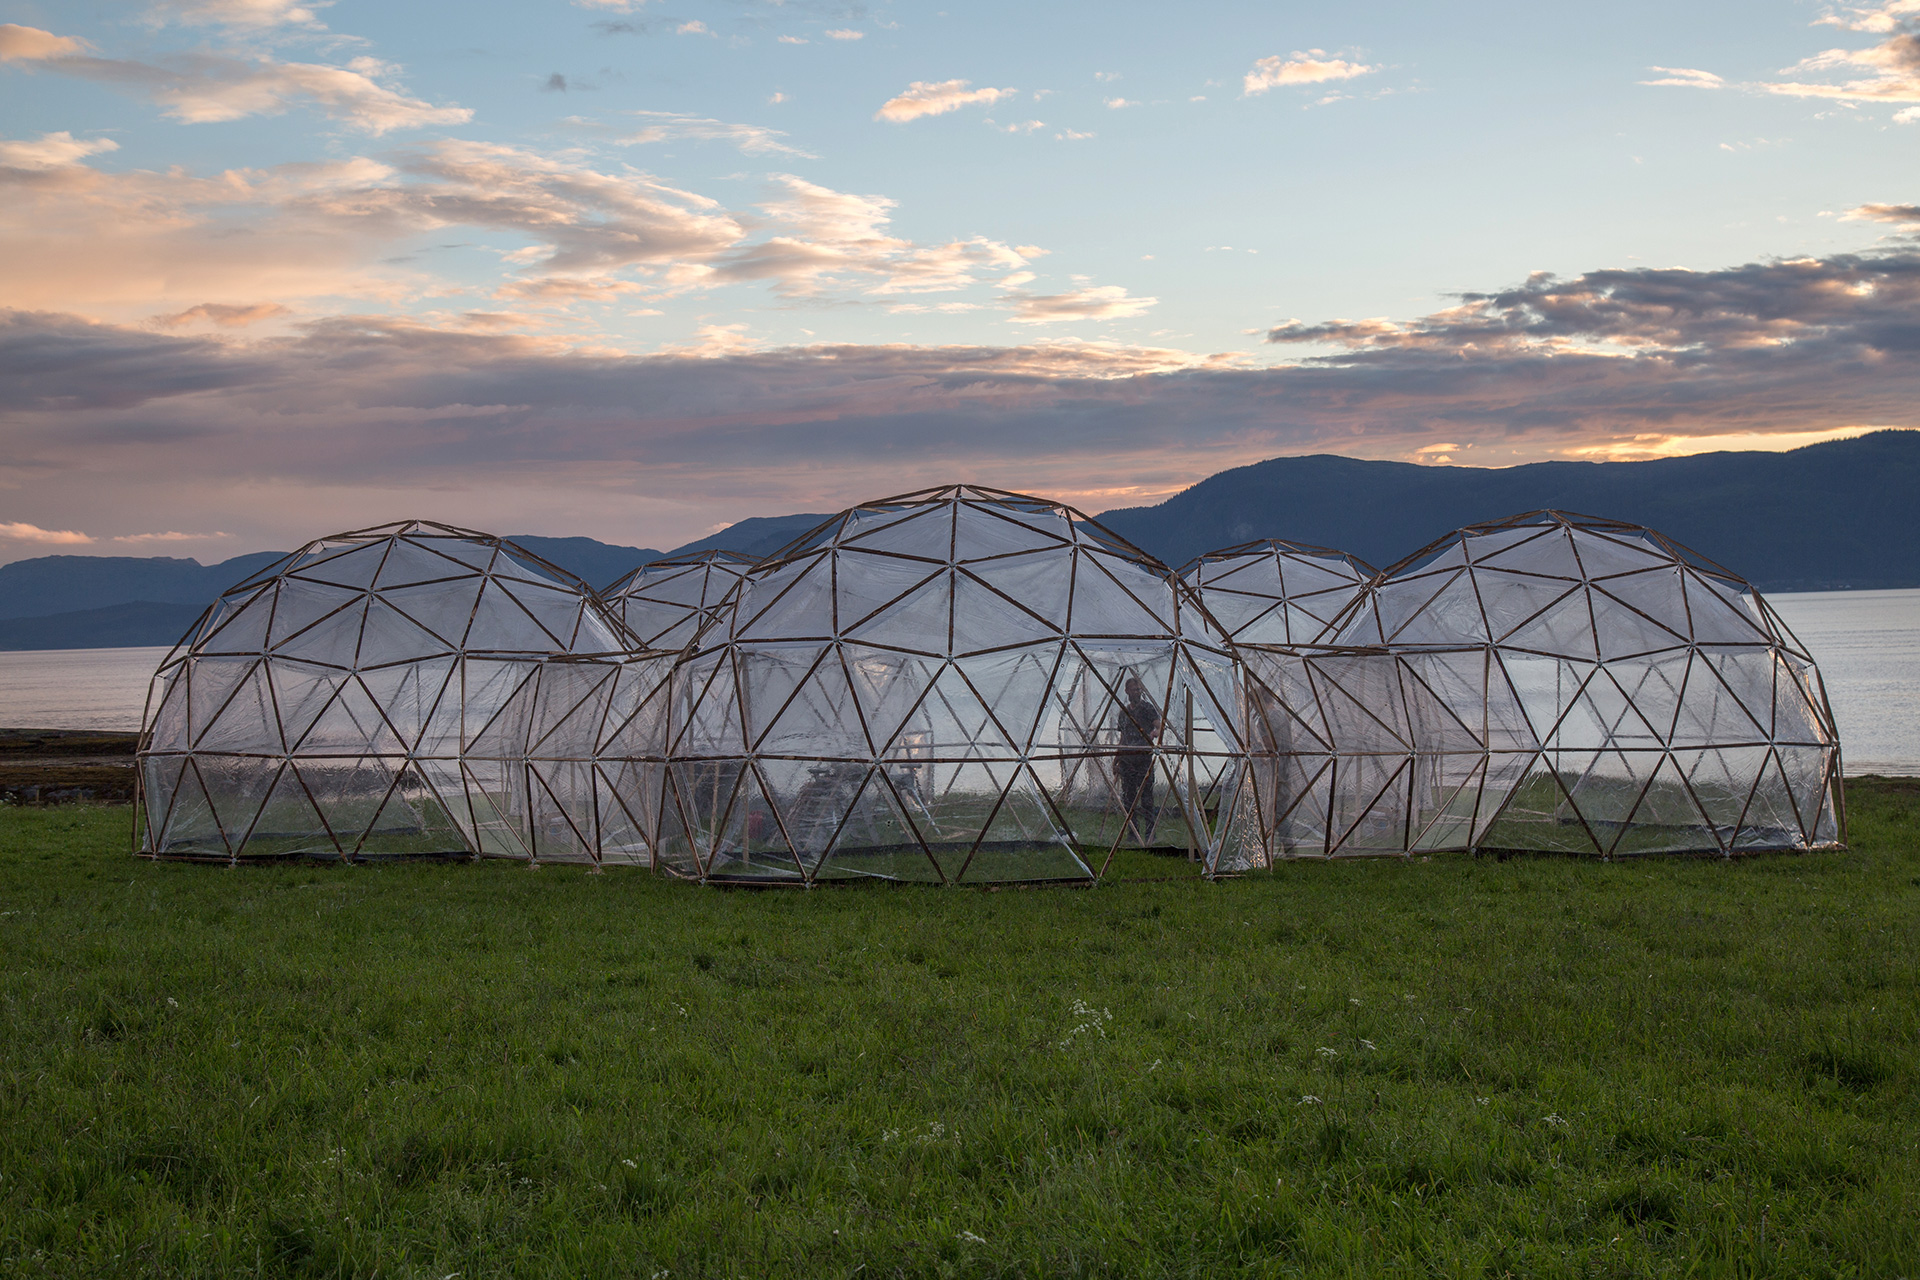 Pollution Pods for the Temporary commission Climart in Trondheim, Norway (2017) | Pollution Pods | Michael Pinsky | STIRworld